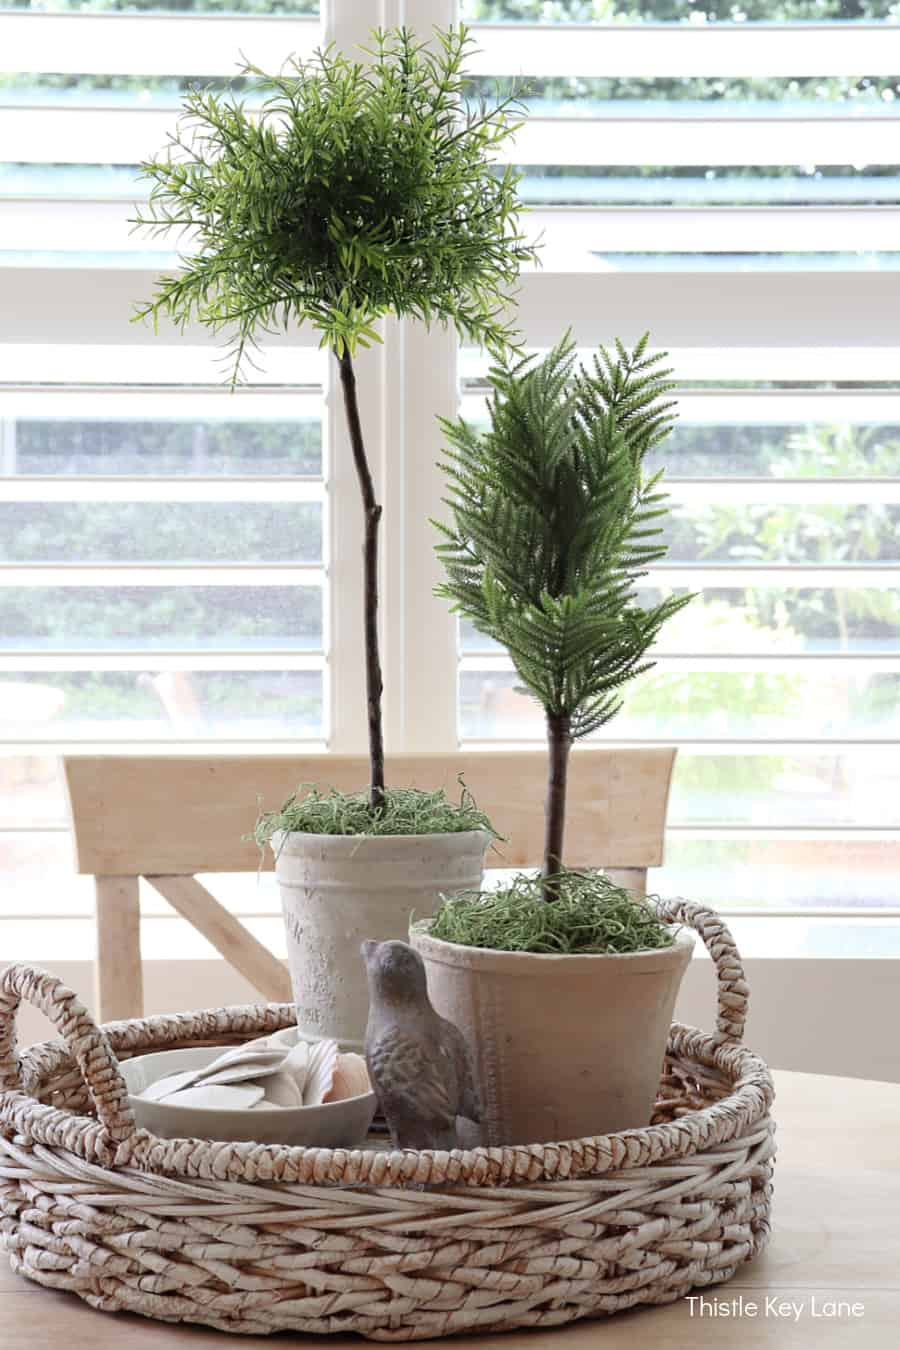 Rosemary and cedar topiaries in a basket tray. How To Create A Faux Topiary